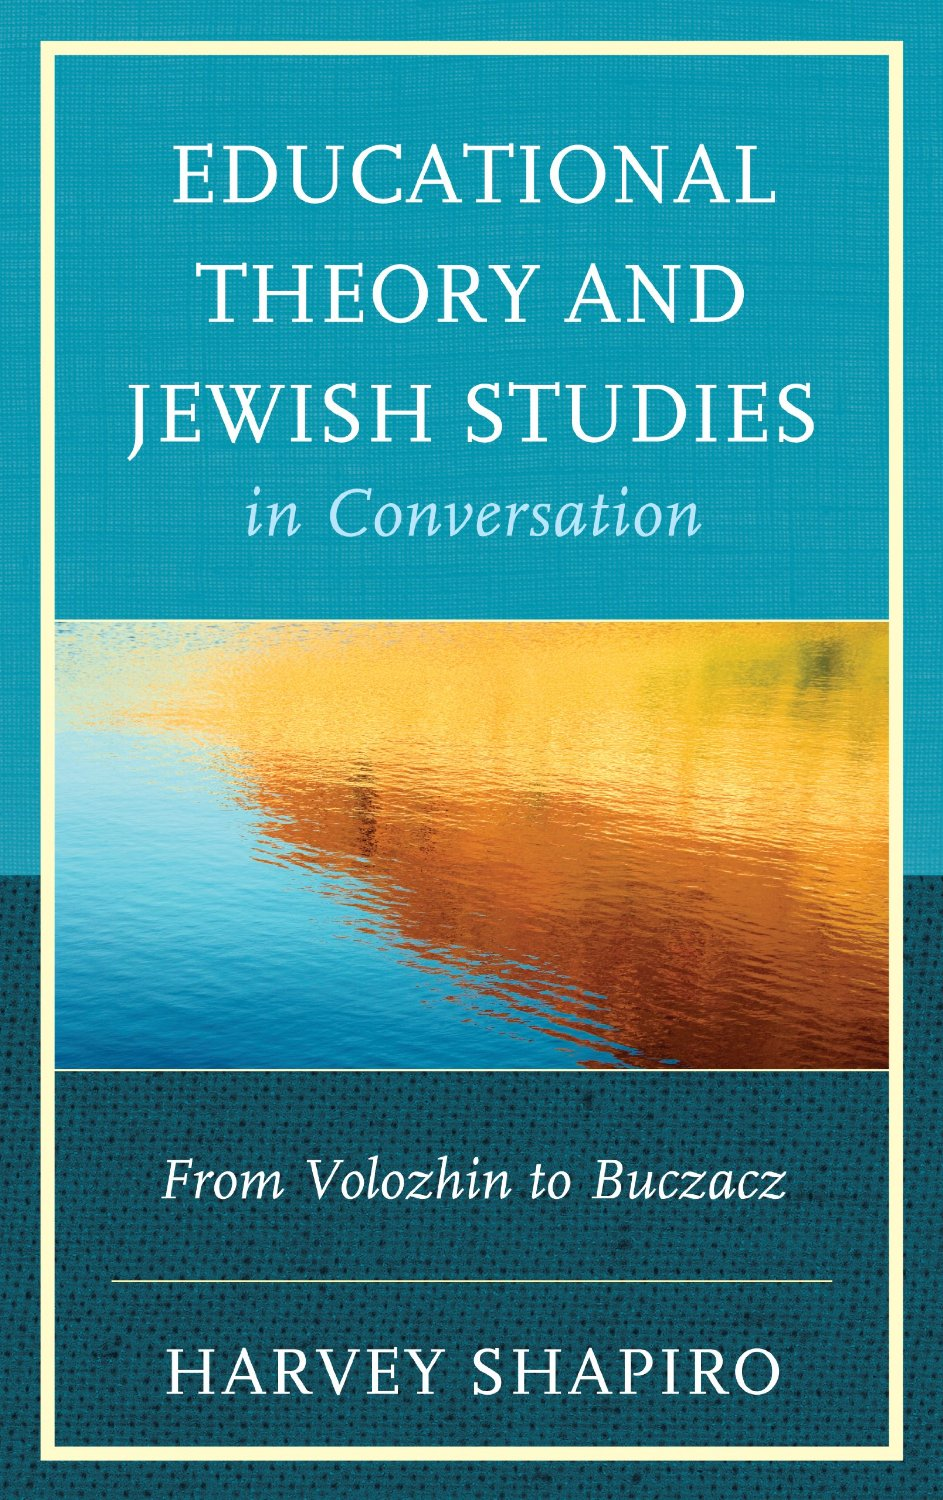 Educational Theory and Jewish Studies in Conversation From Volozhin to Buczacz